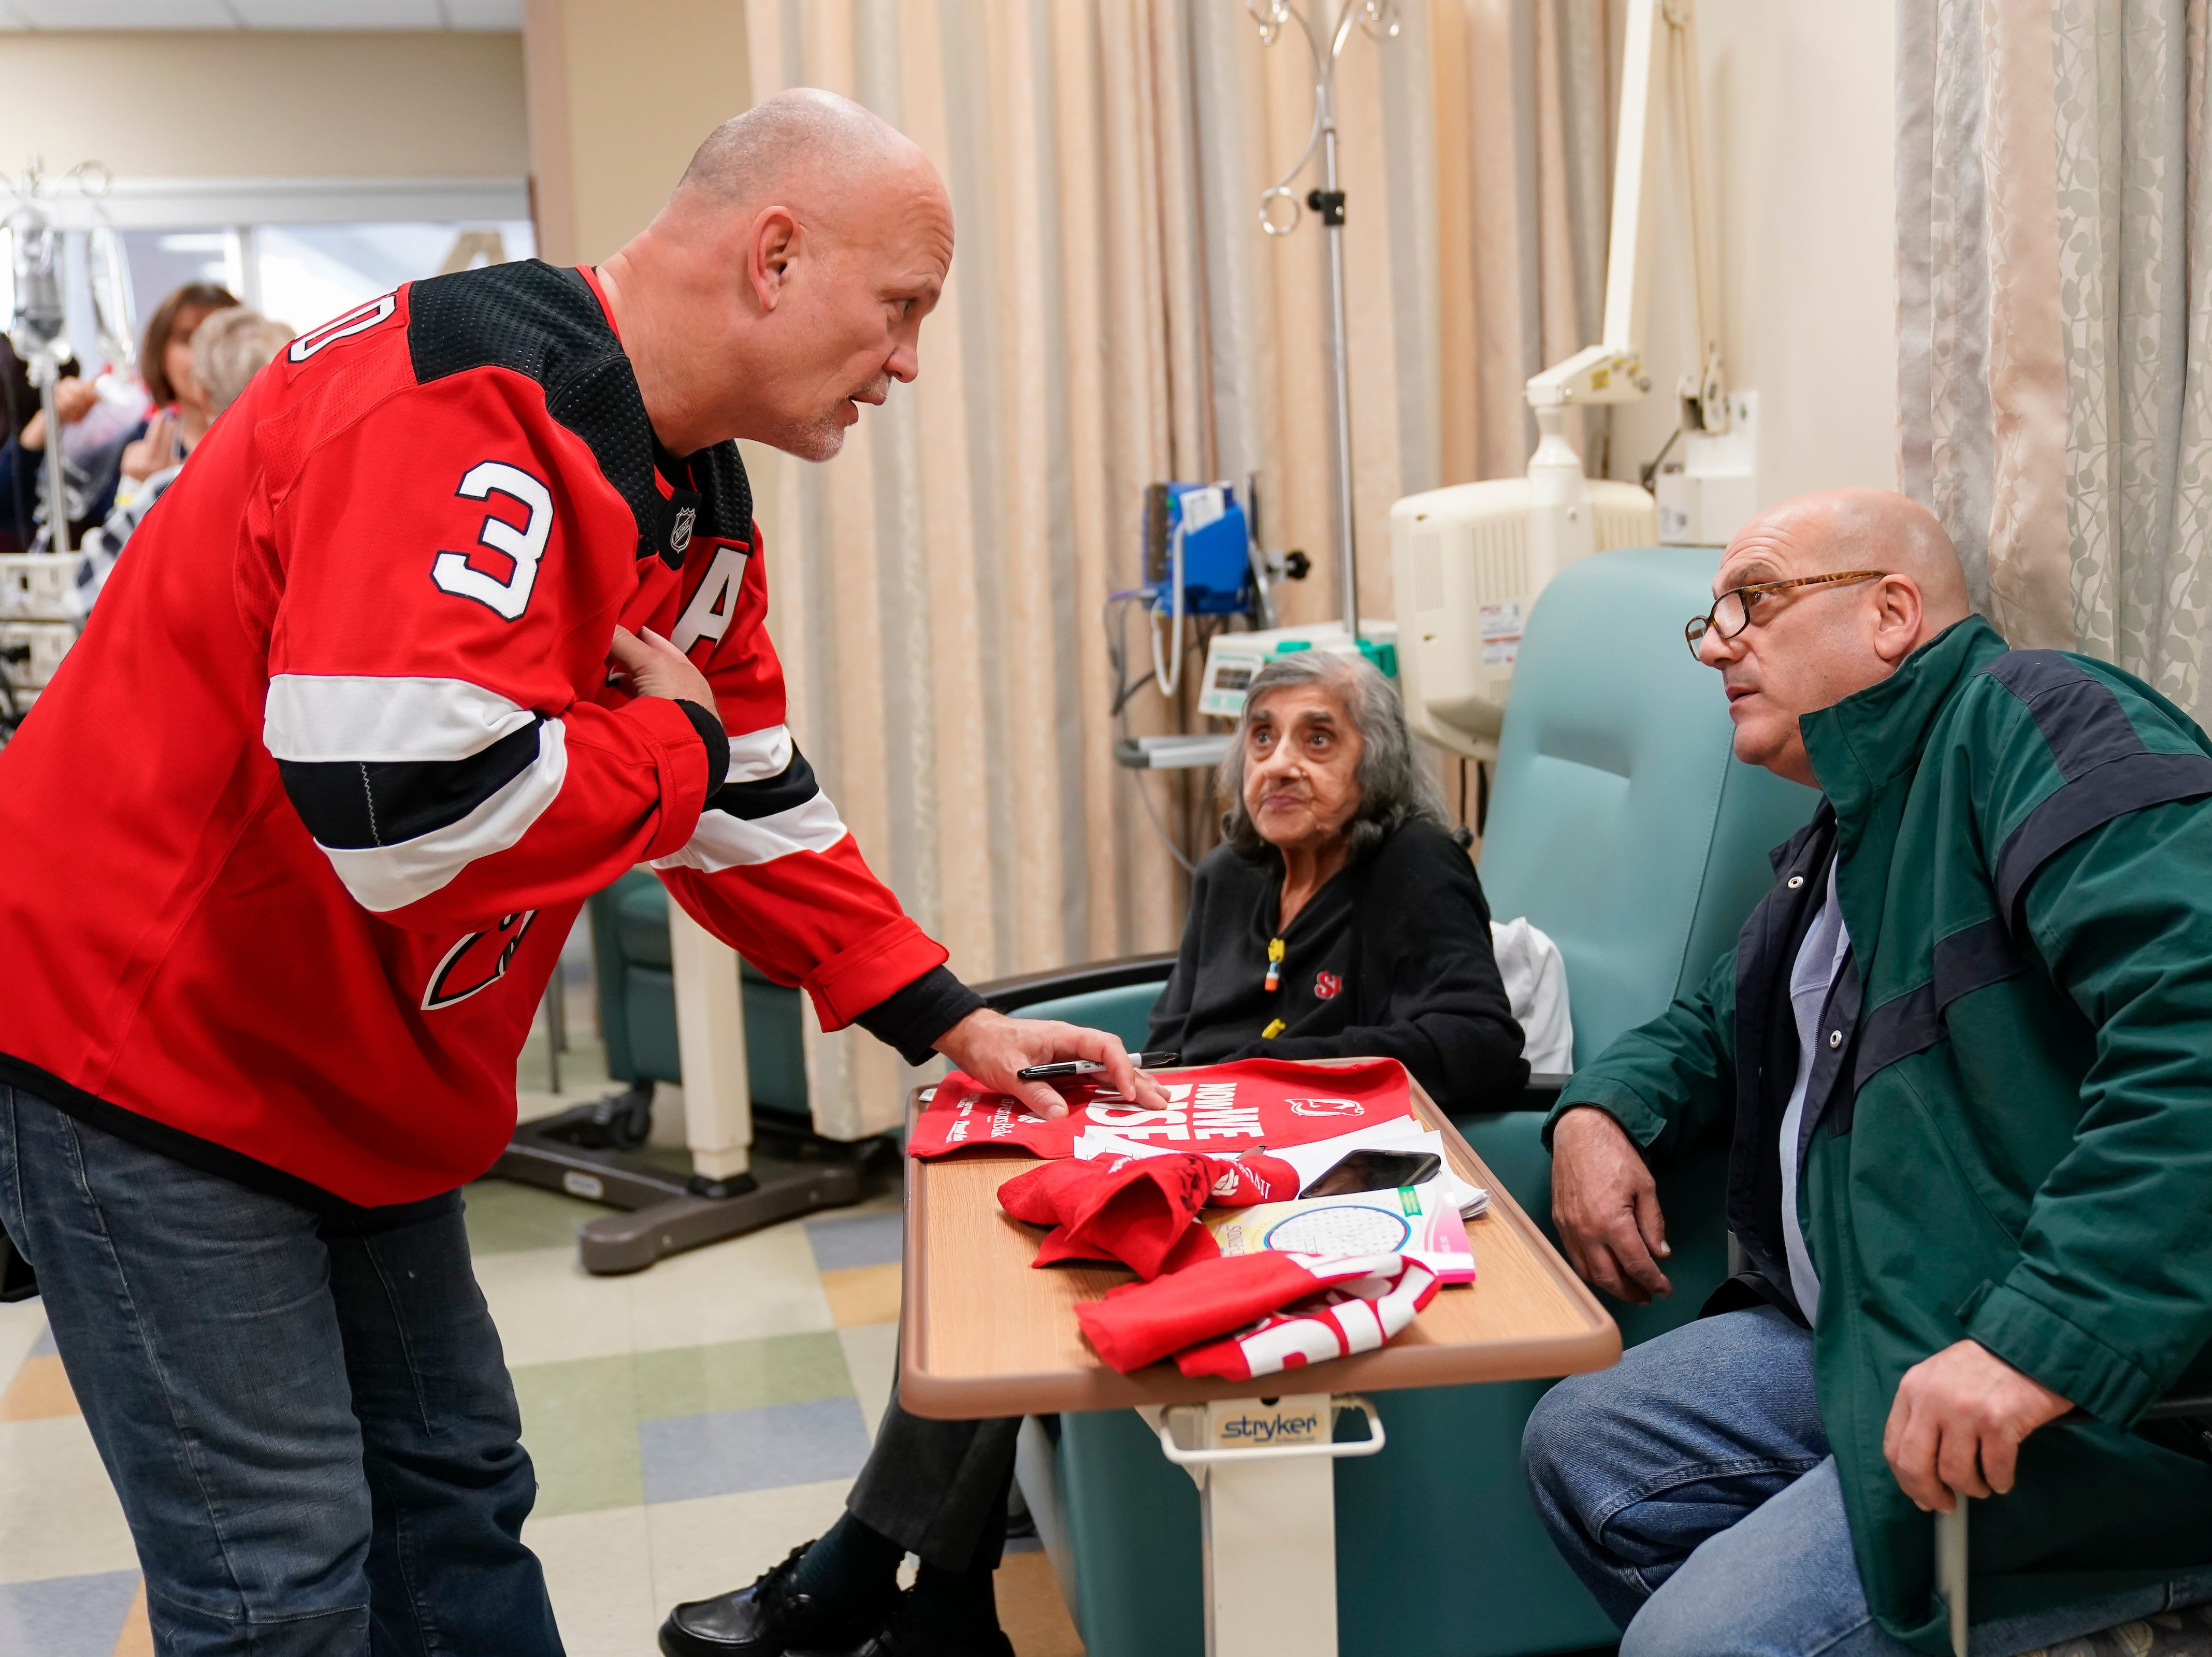 Three-time New Jersey Devils Stanley Cup winner Ken Danyeko was one of several Devils players, alumni and staff who visitedRWJ Barnabas Health sites Monday. At RWJUH Somerset, Daneyko charmed visitors, patients, such as Stella and Tony Gatti of North Plainfield,, and staff alike visiting several oncology units at both the Steeplechase Cancer Center and Paul R.NardoniOncology Pavilionof the main hospital.